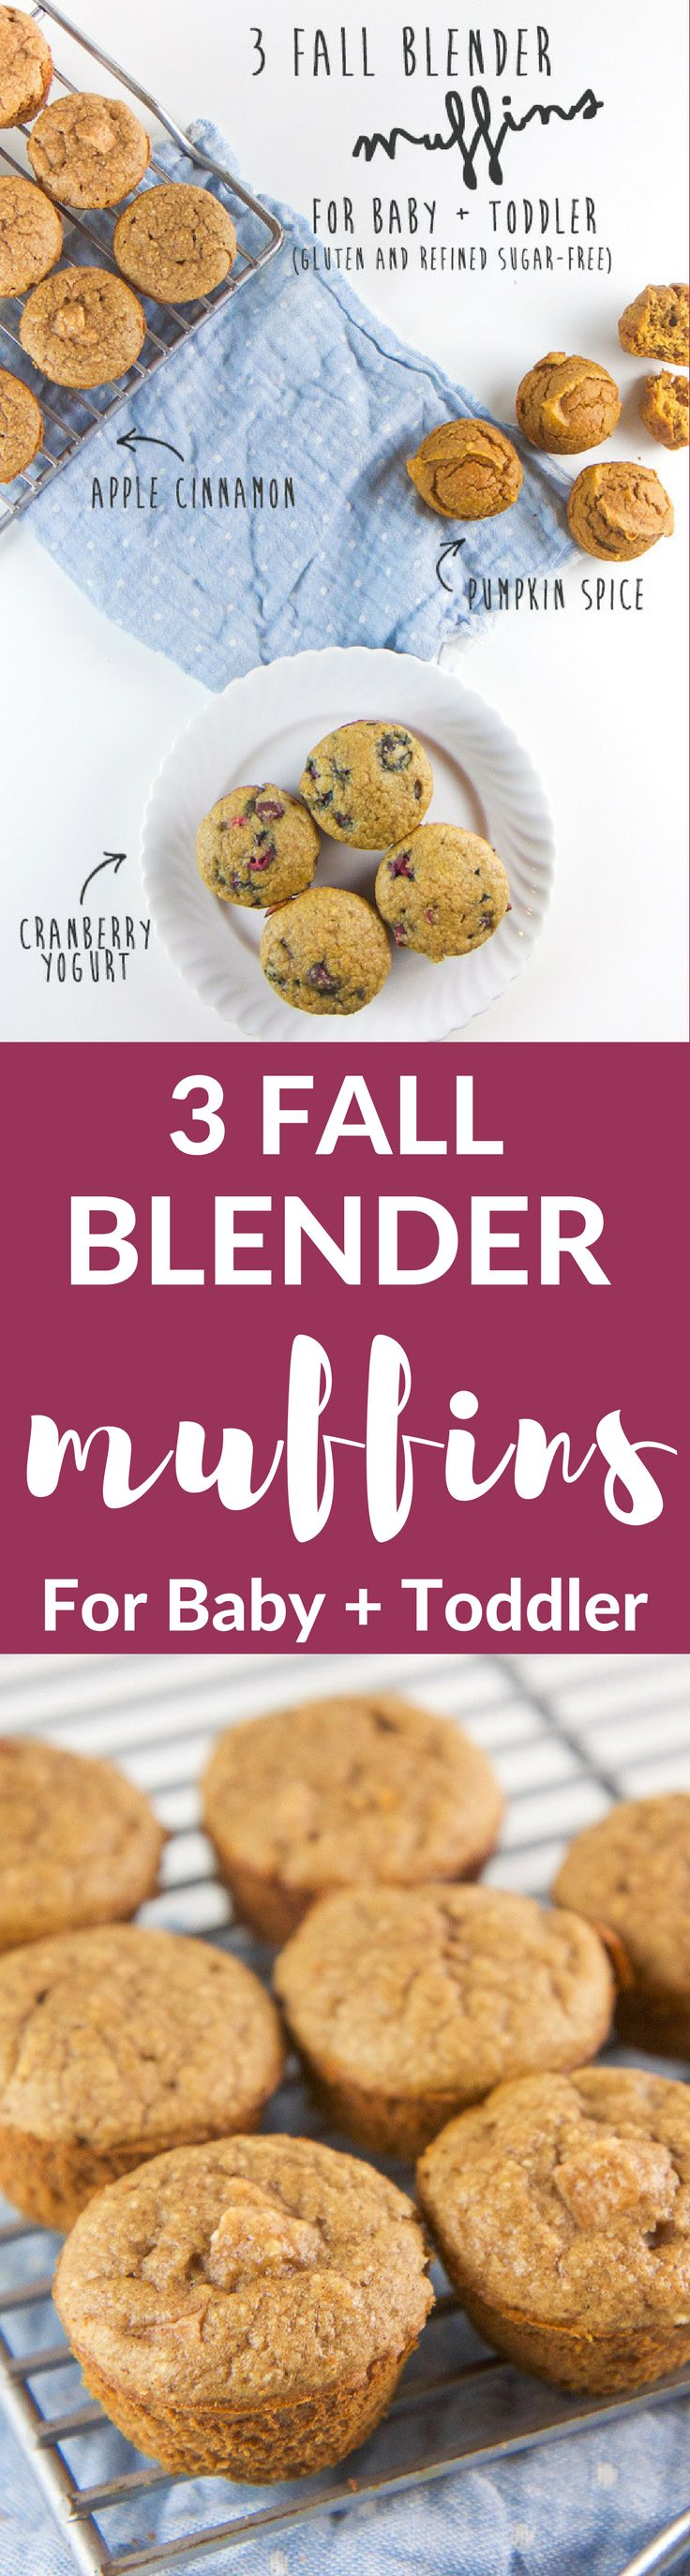 3 delicious muffins for baby and toddler that are made in the blender!